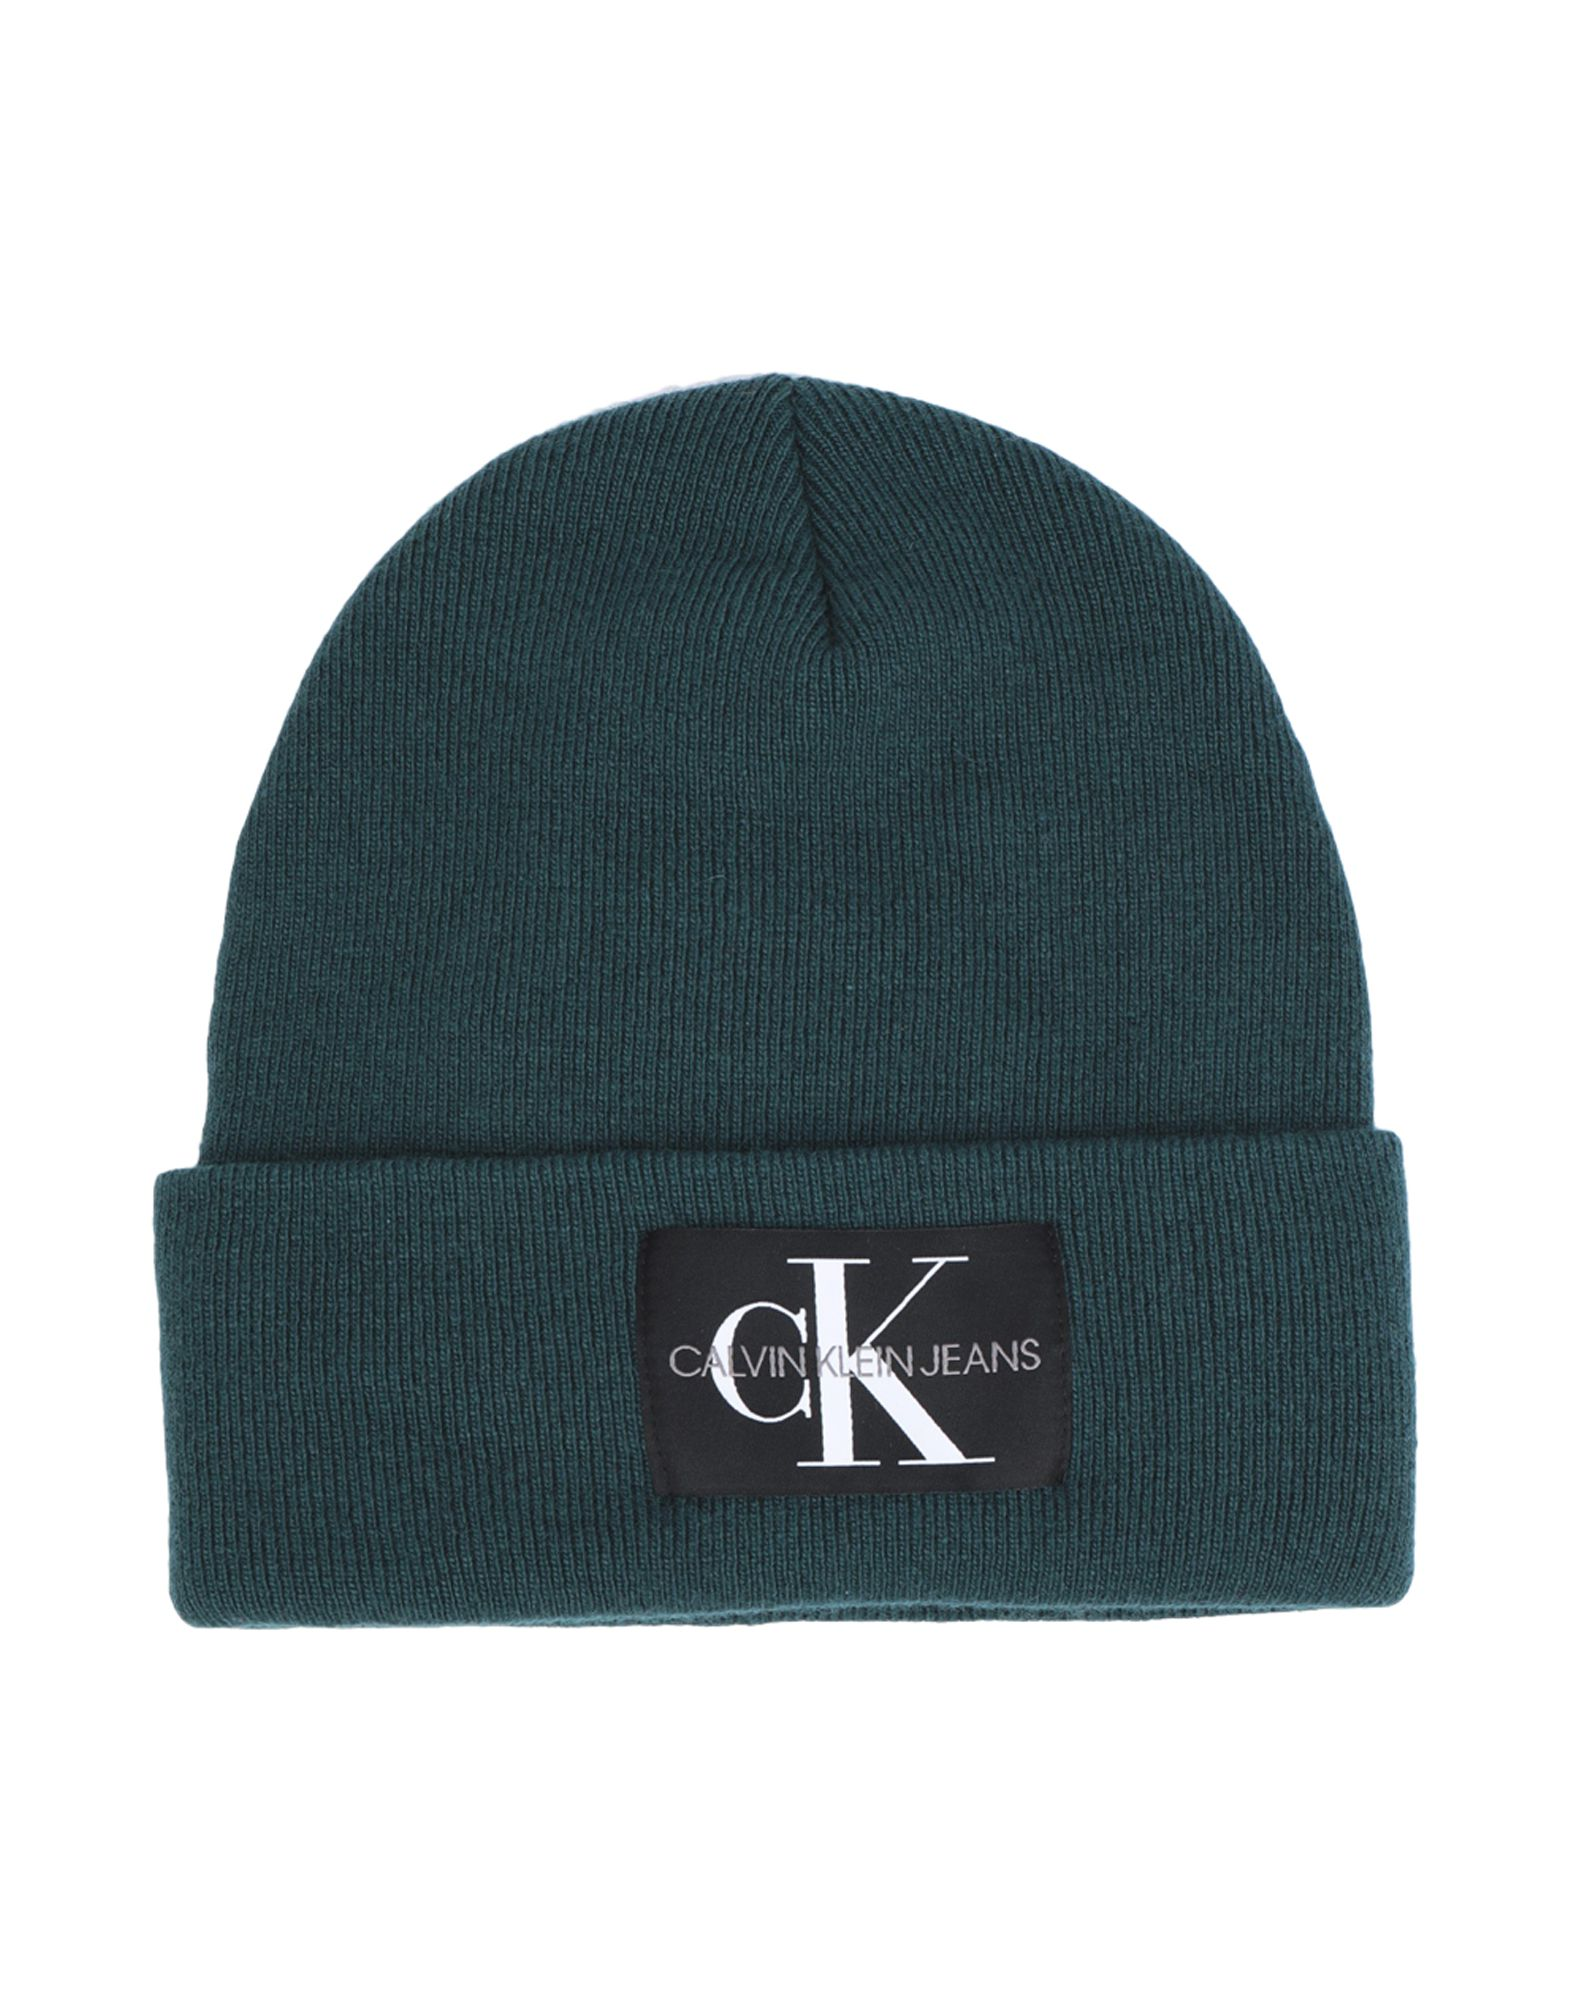 Calvin Klein Jeans J Basic Men Knitted - Hat - Men Calvin Klein Jeans Hats  online on YOOX Portugal - 46604851 3b12772a86f